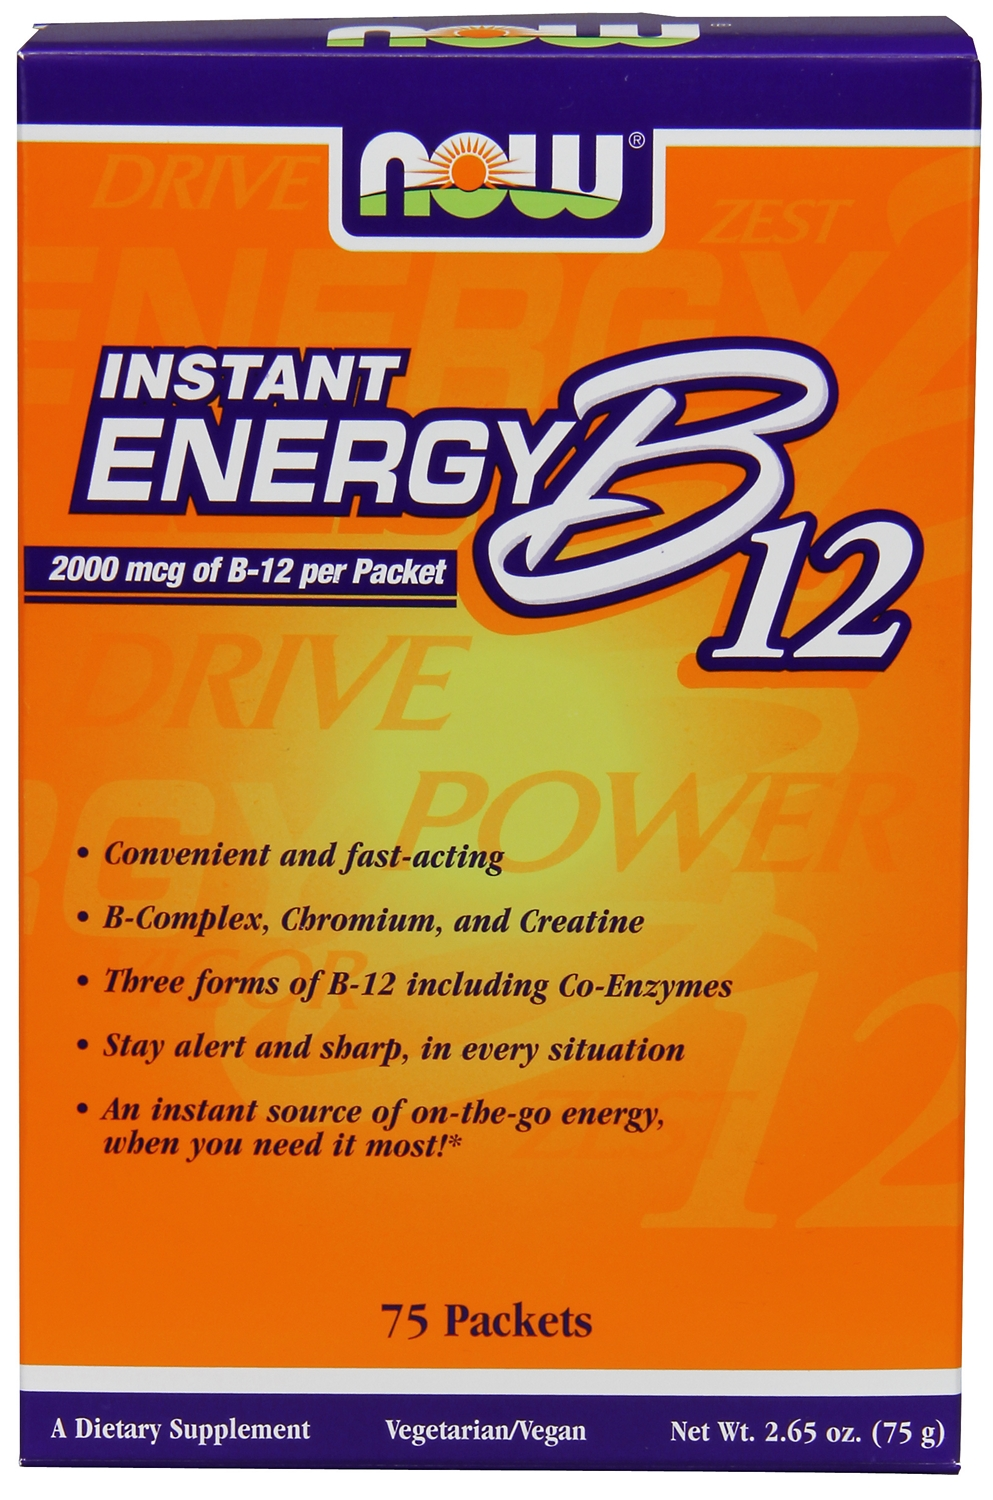 Instant Energy B-12 2,000 mcg 75 packs by NOW